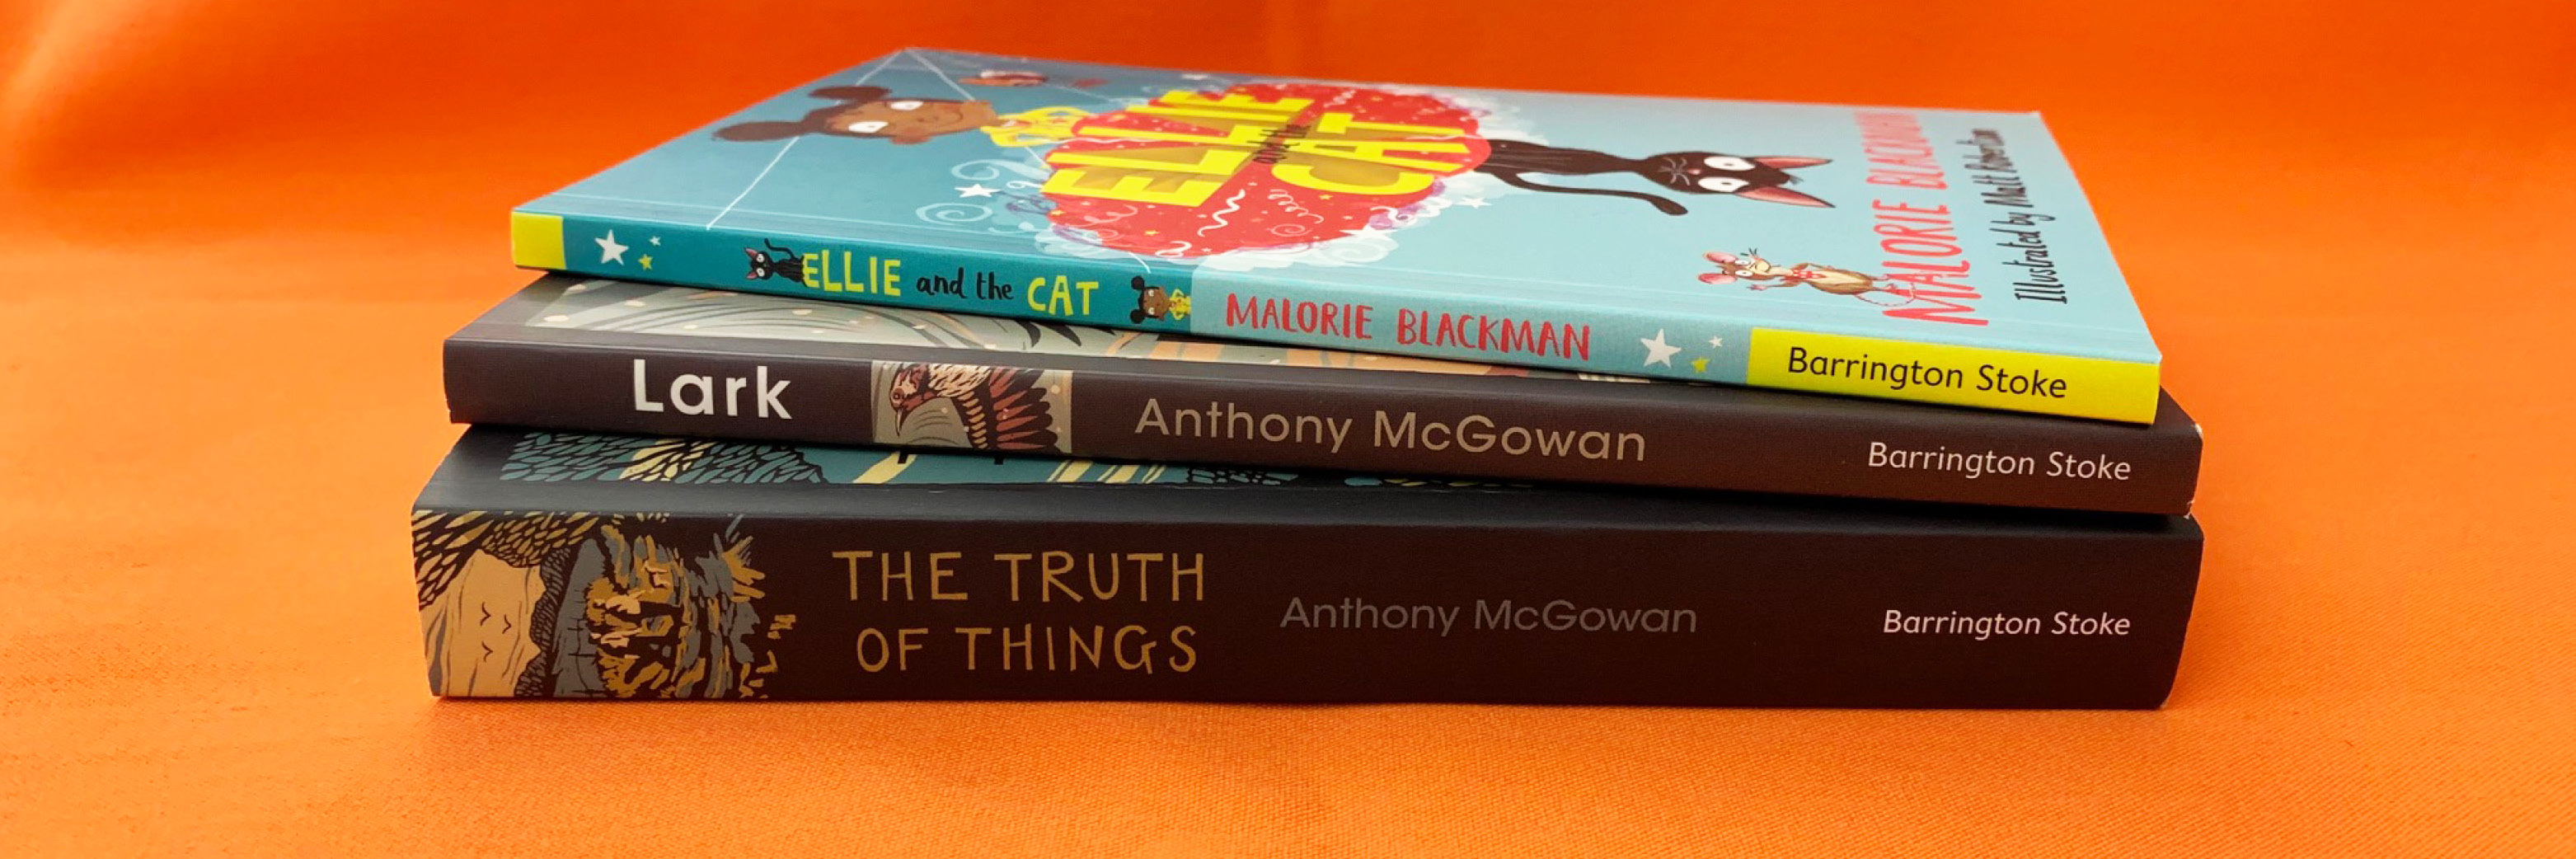 A photograph showing a stack of books on an orange table. The photo shows the spines of Ellie and the Cat by Malorie Blackman, Lark by Anthony McGowan, The Truth of Things by Anthony McGowan